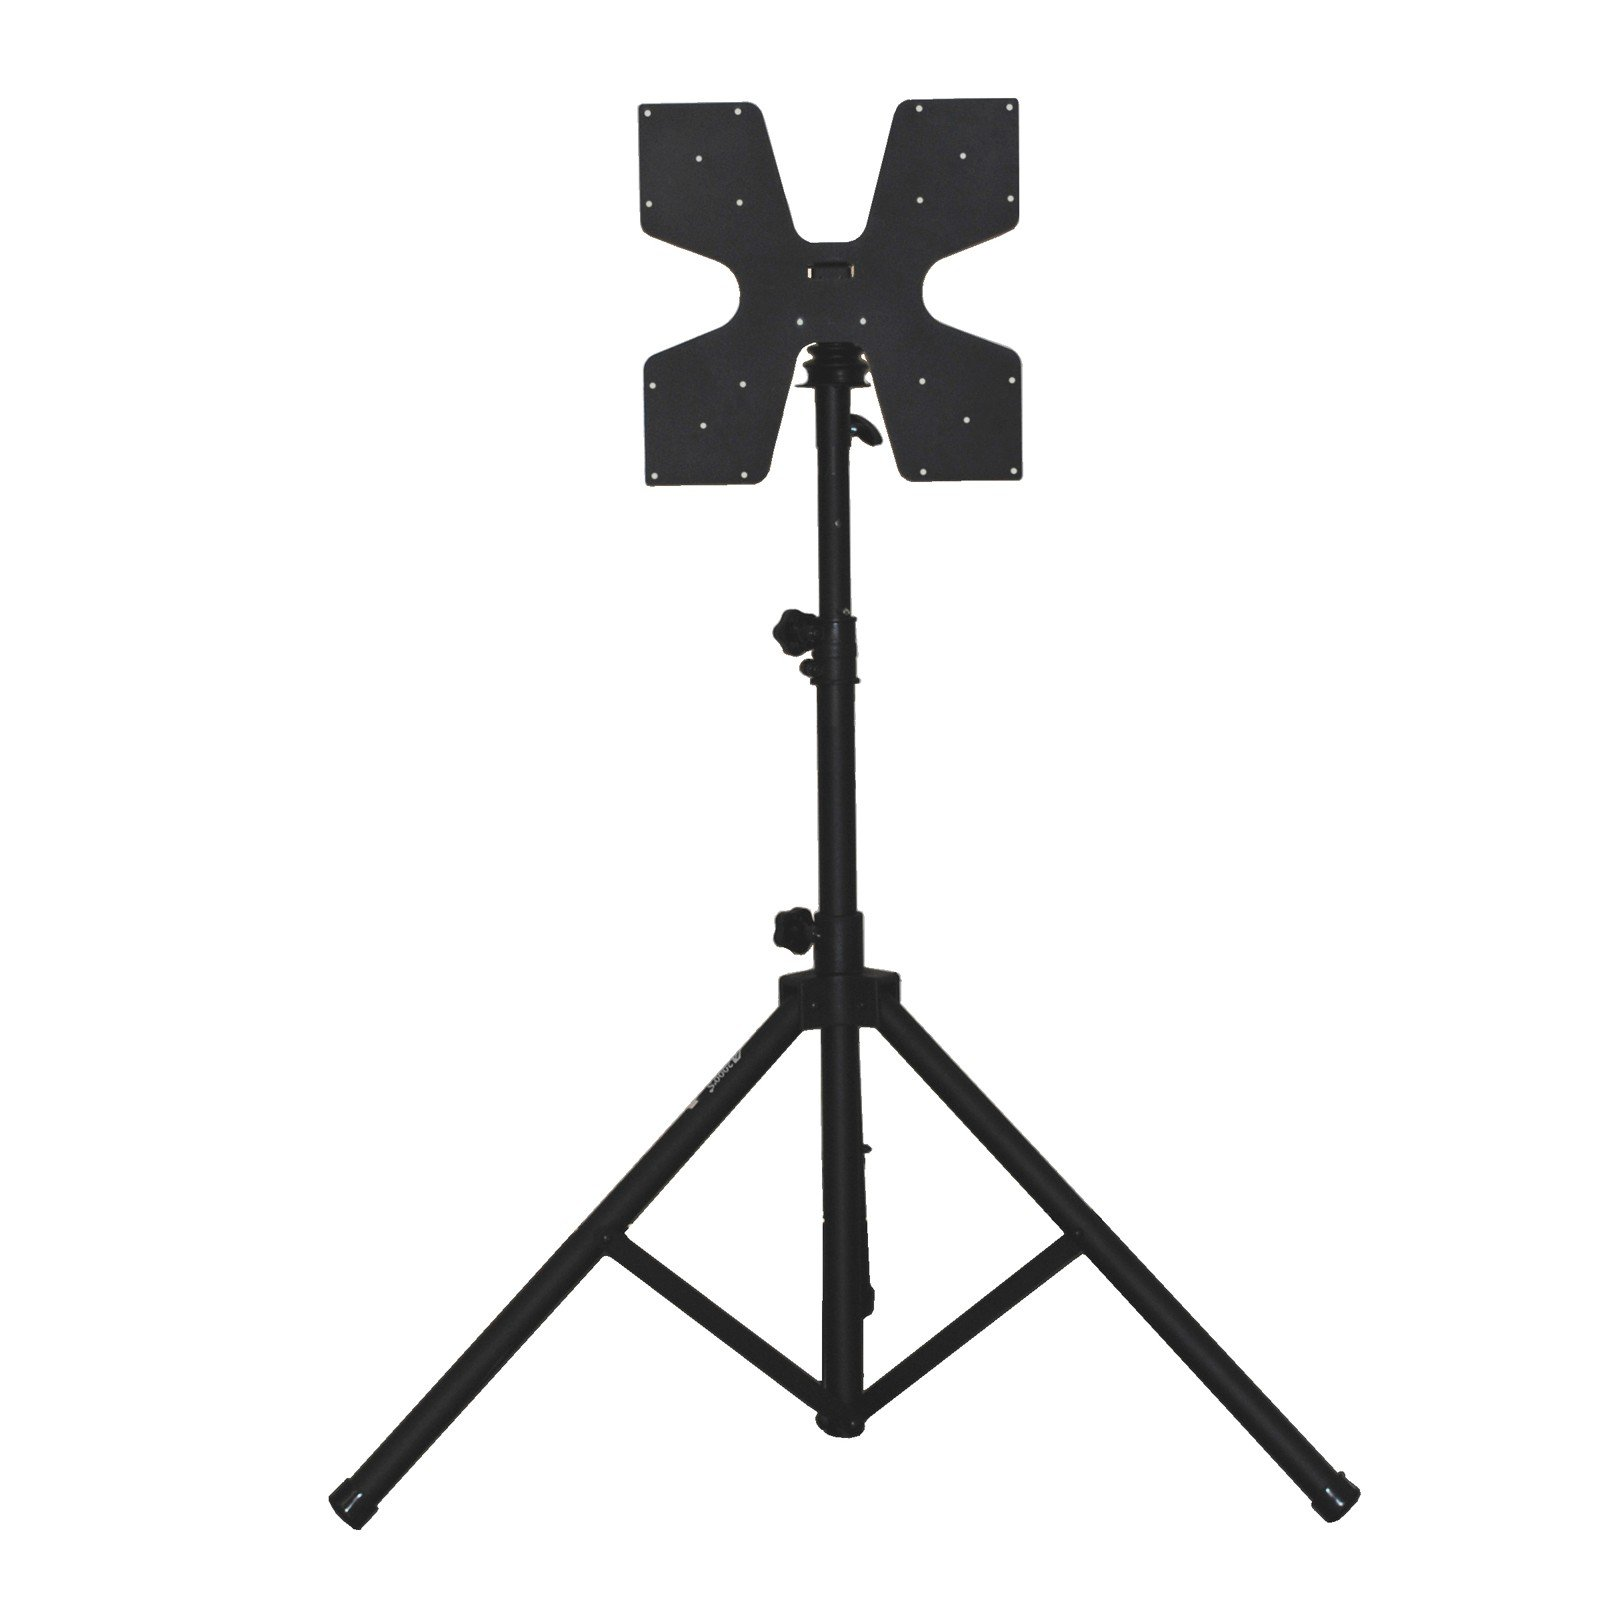 Audio 2000 AST424Y Portable Flat Panel LCD TV Stand with Foldable Tripod Legs